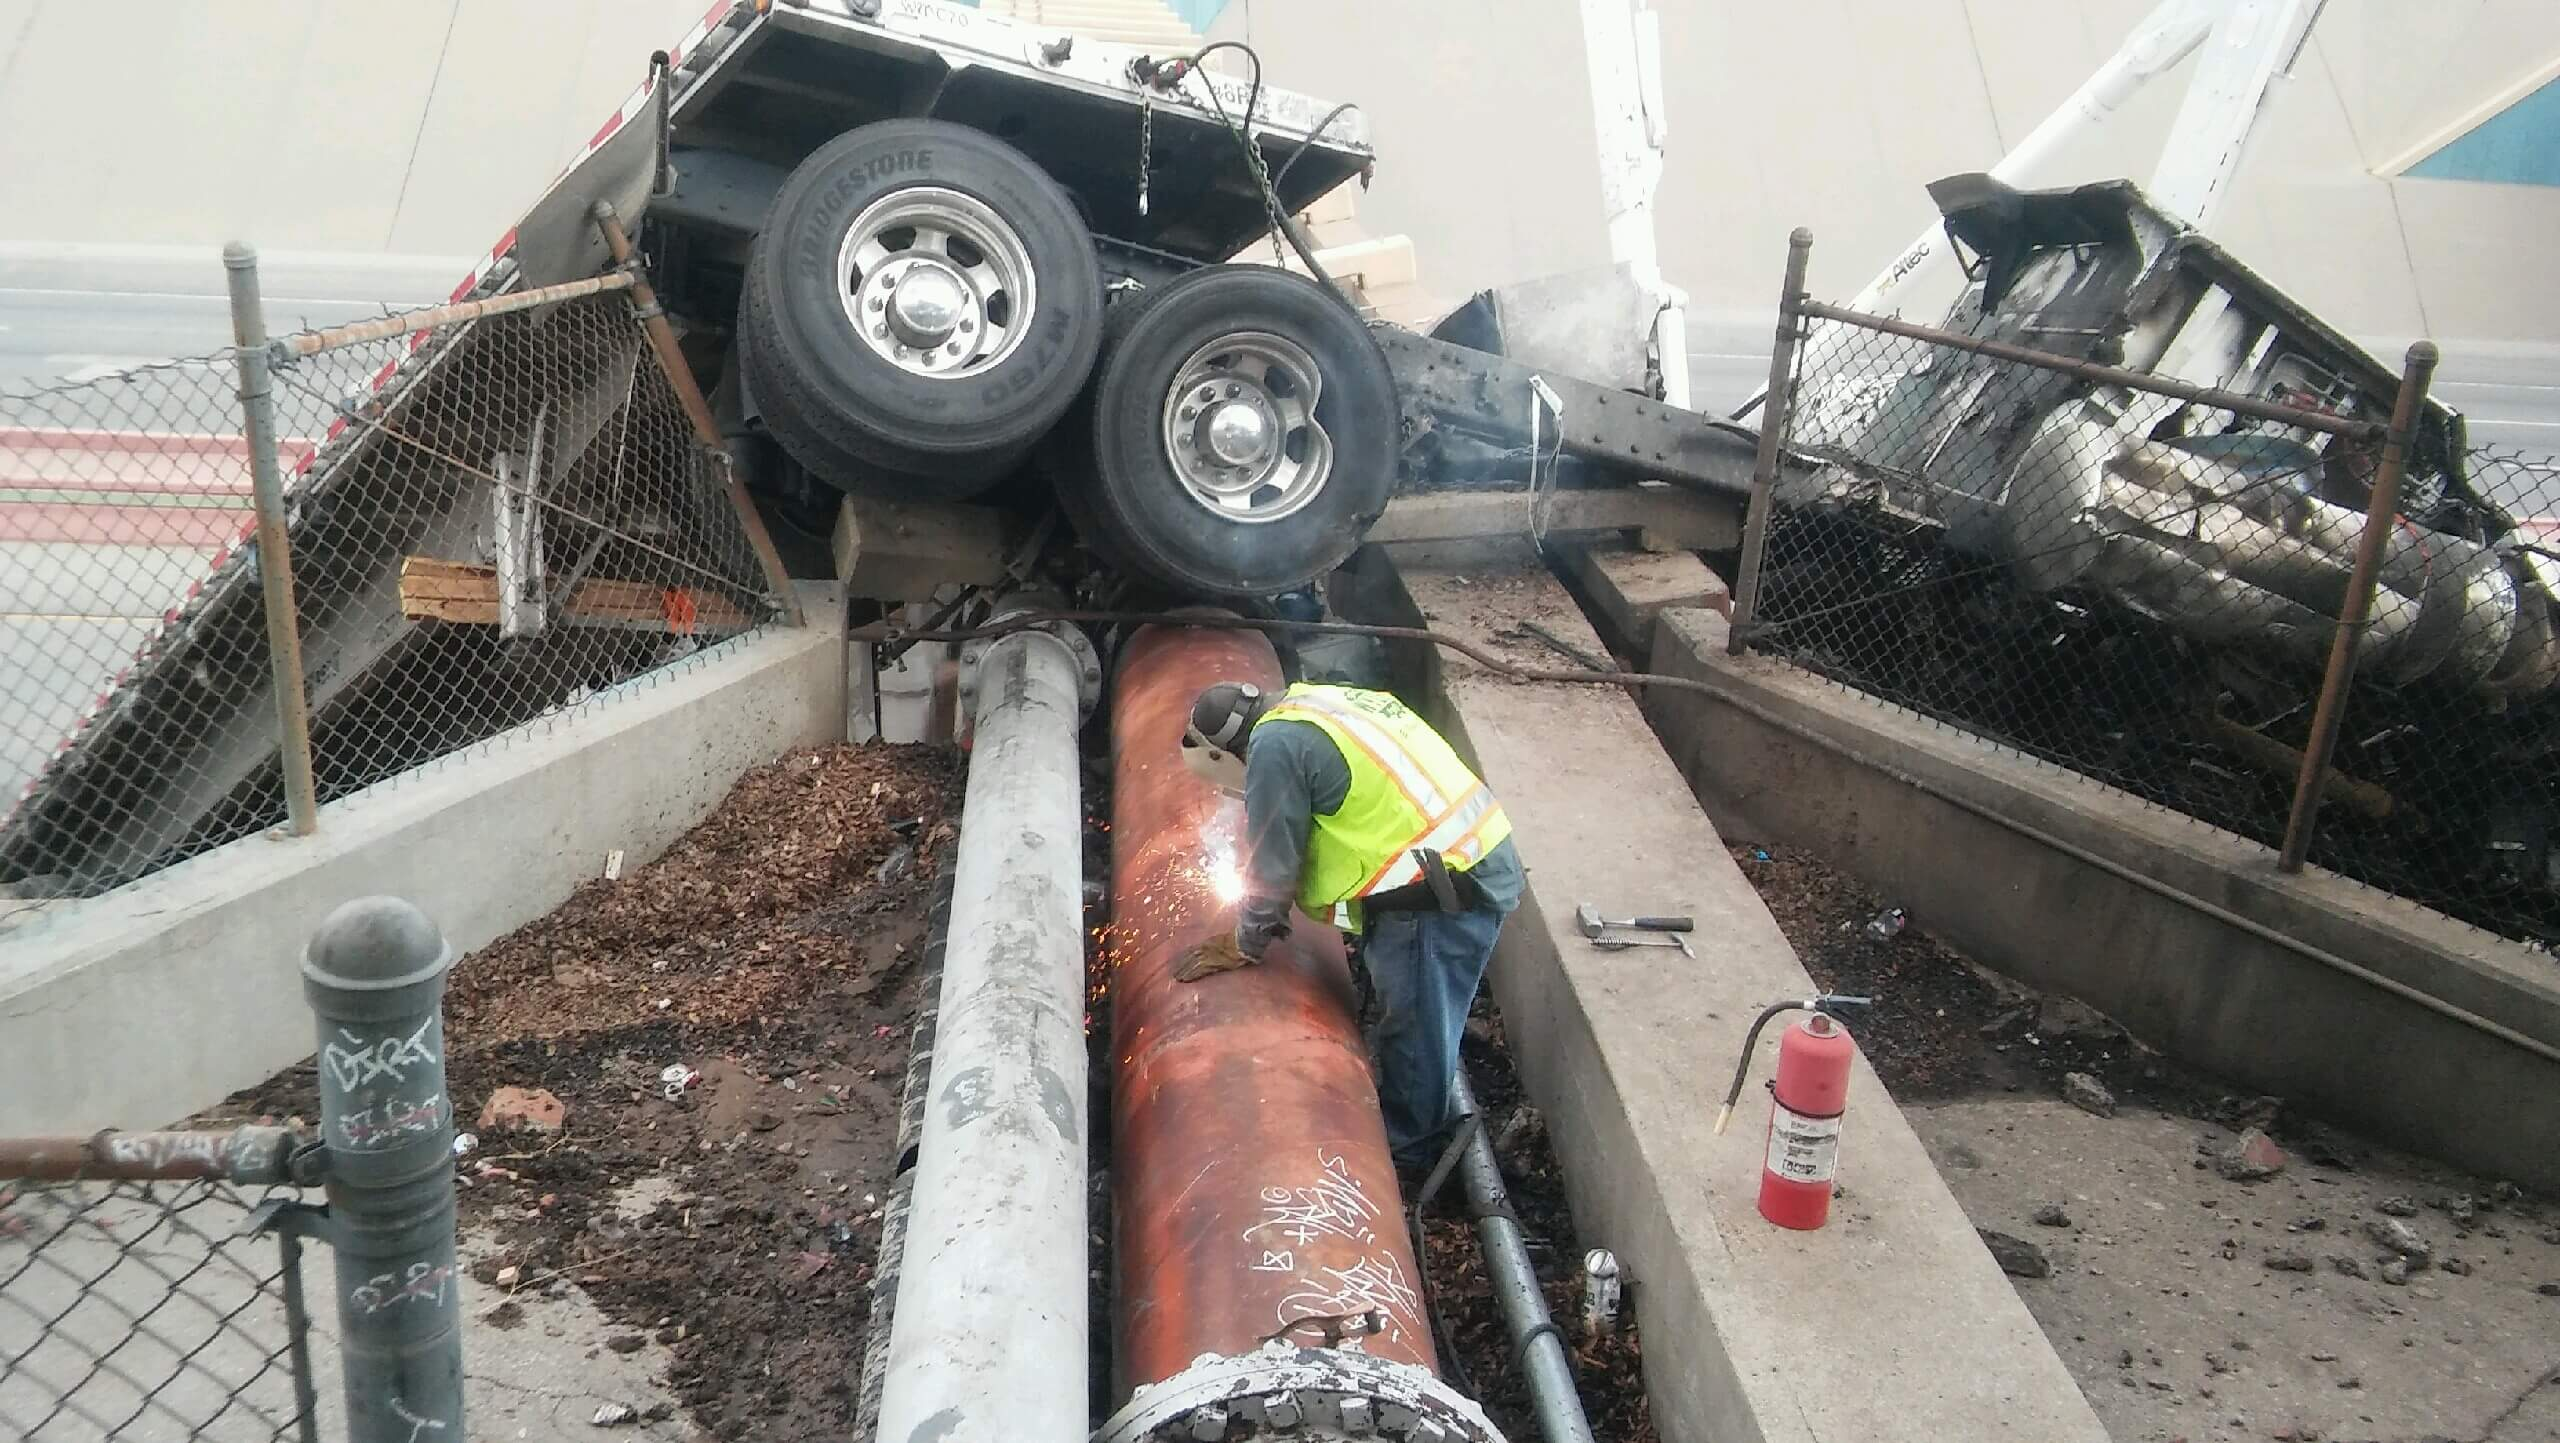 el paso accident on I-10 involving semi truck and bridge collapse